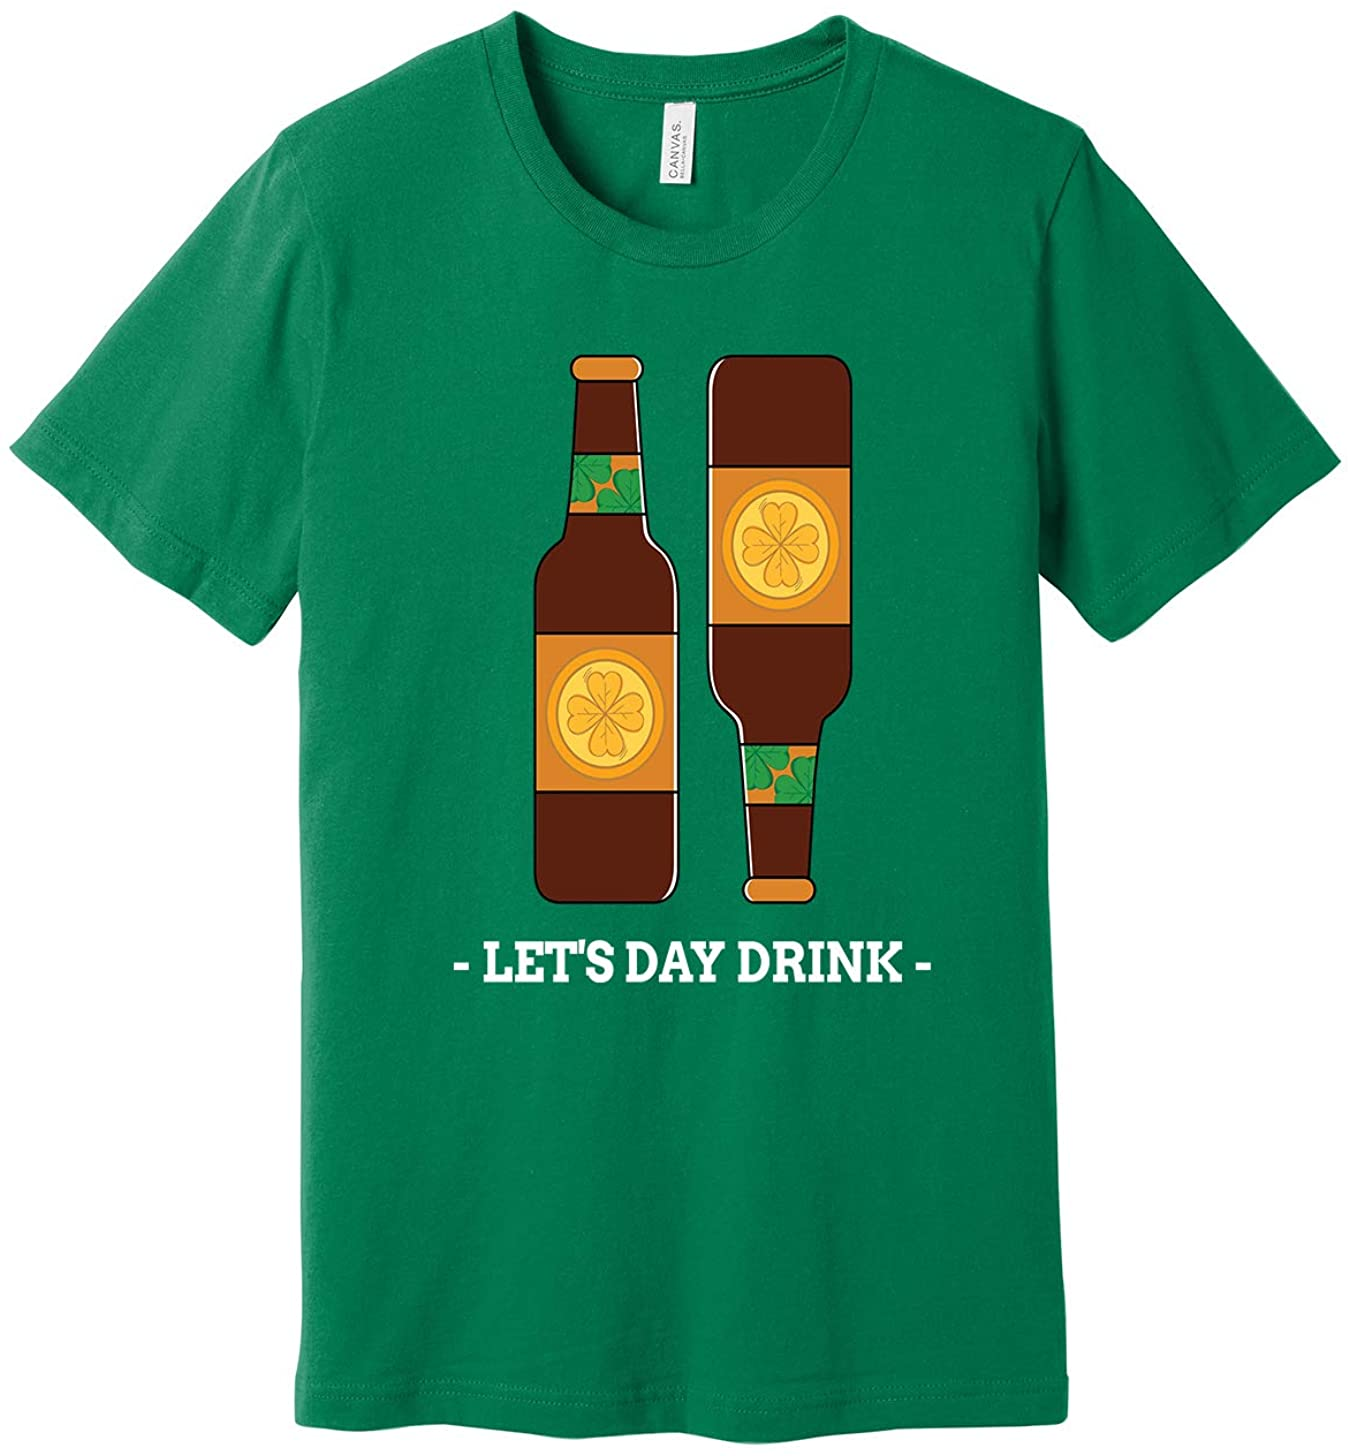 INK STITCH Boys and Girls Youth St. Patrick's Day Day Drink Short Sleeve T-Shirts - Green